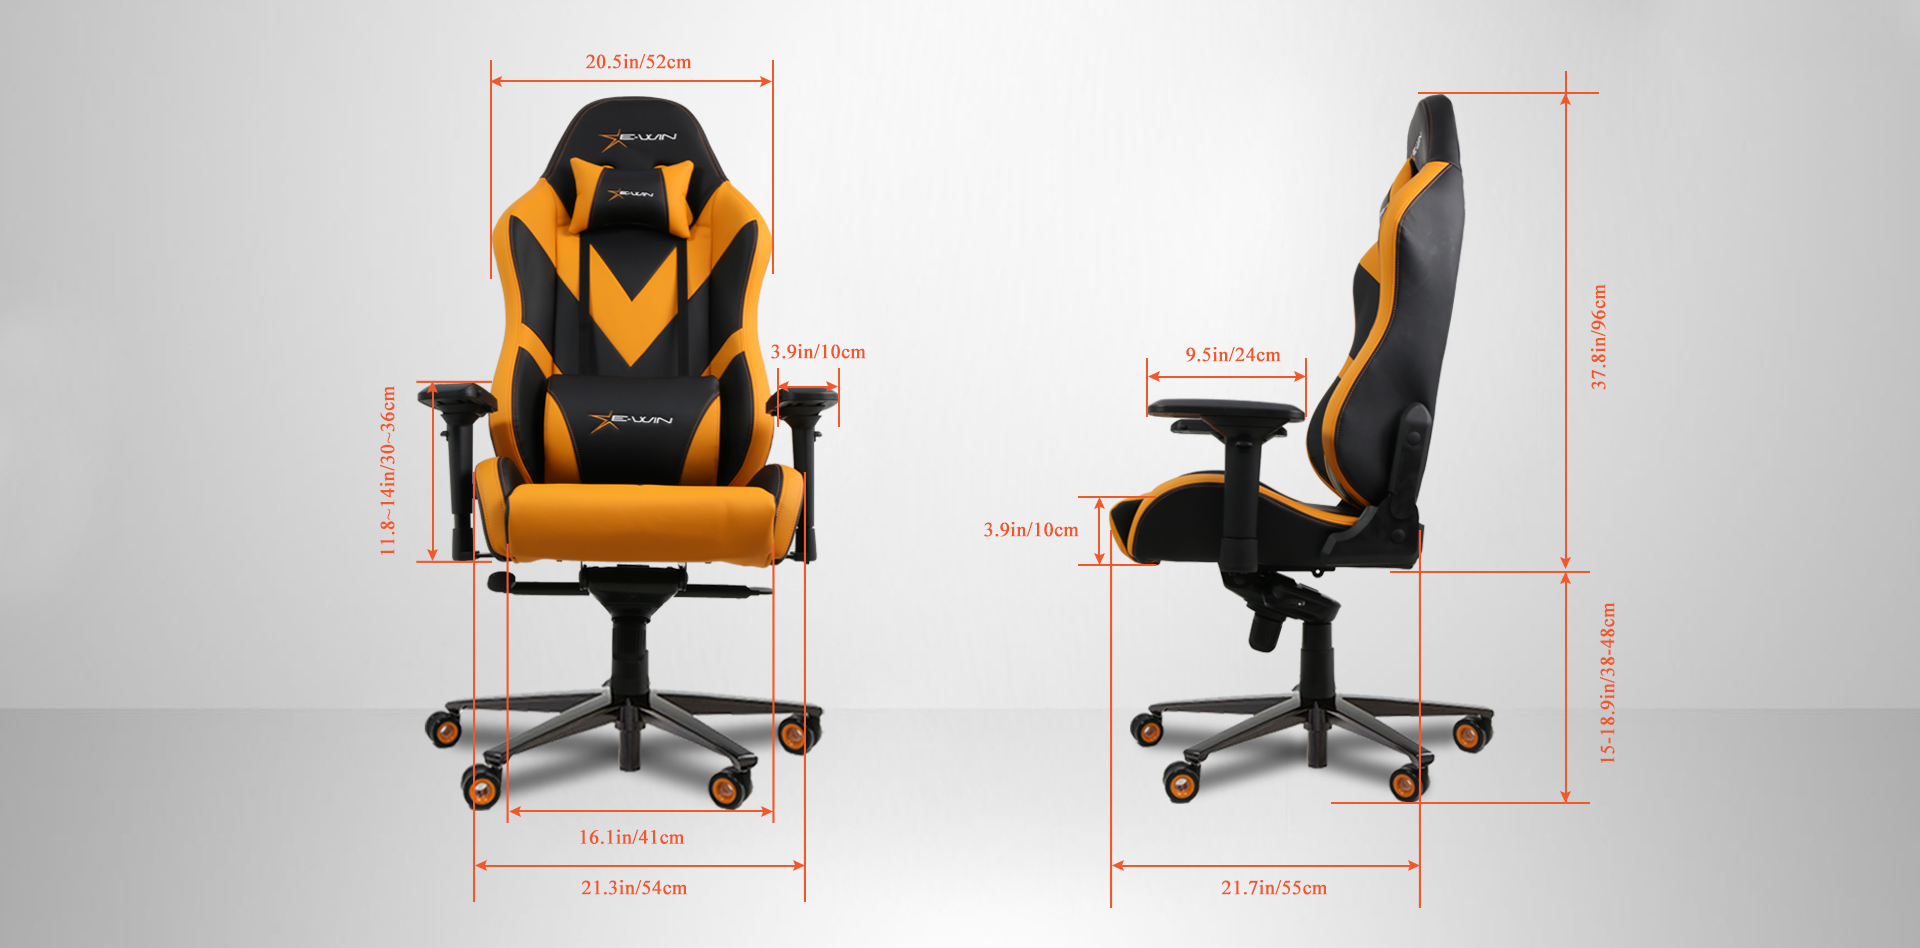 E-WIN Gaming Chair Dimensions